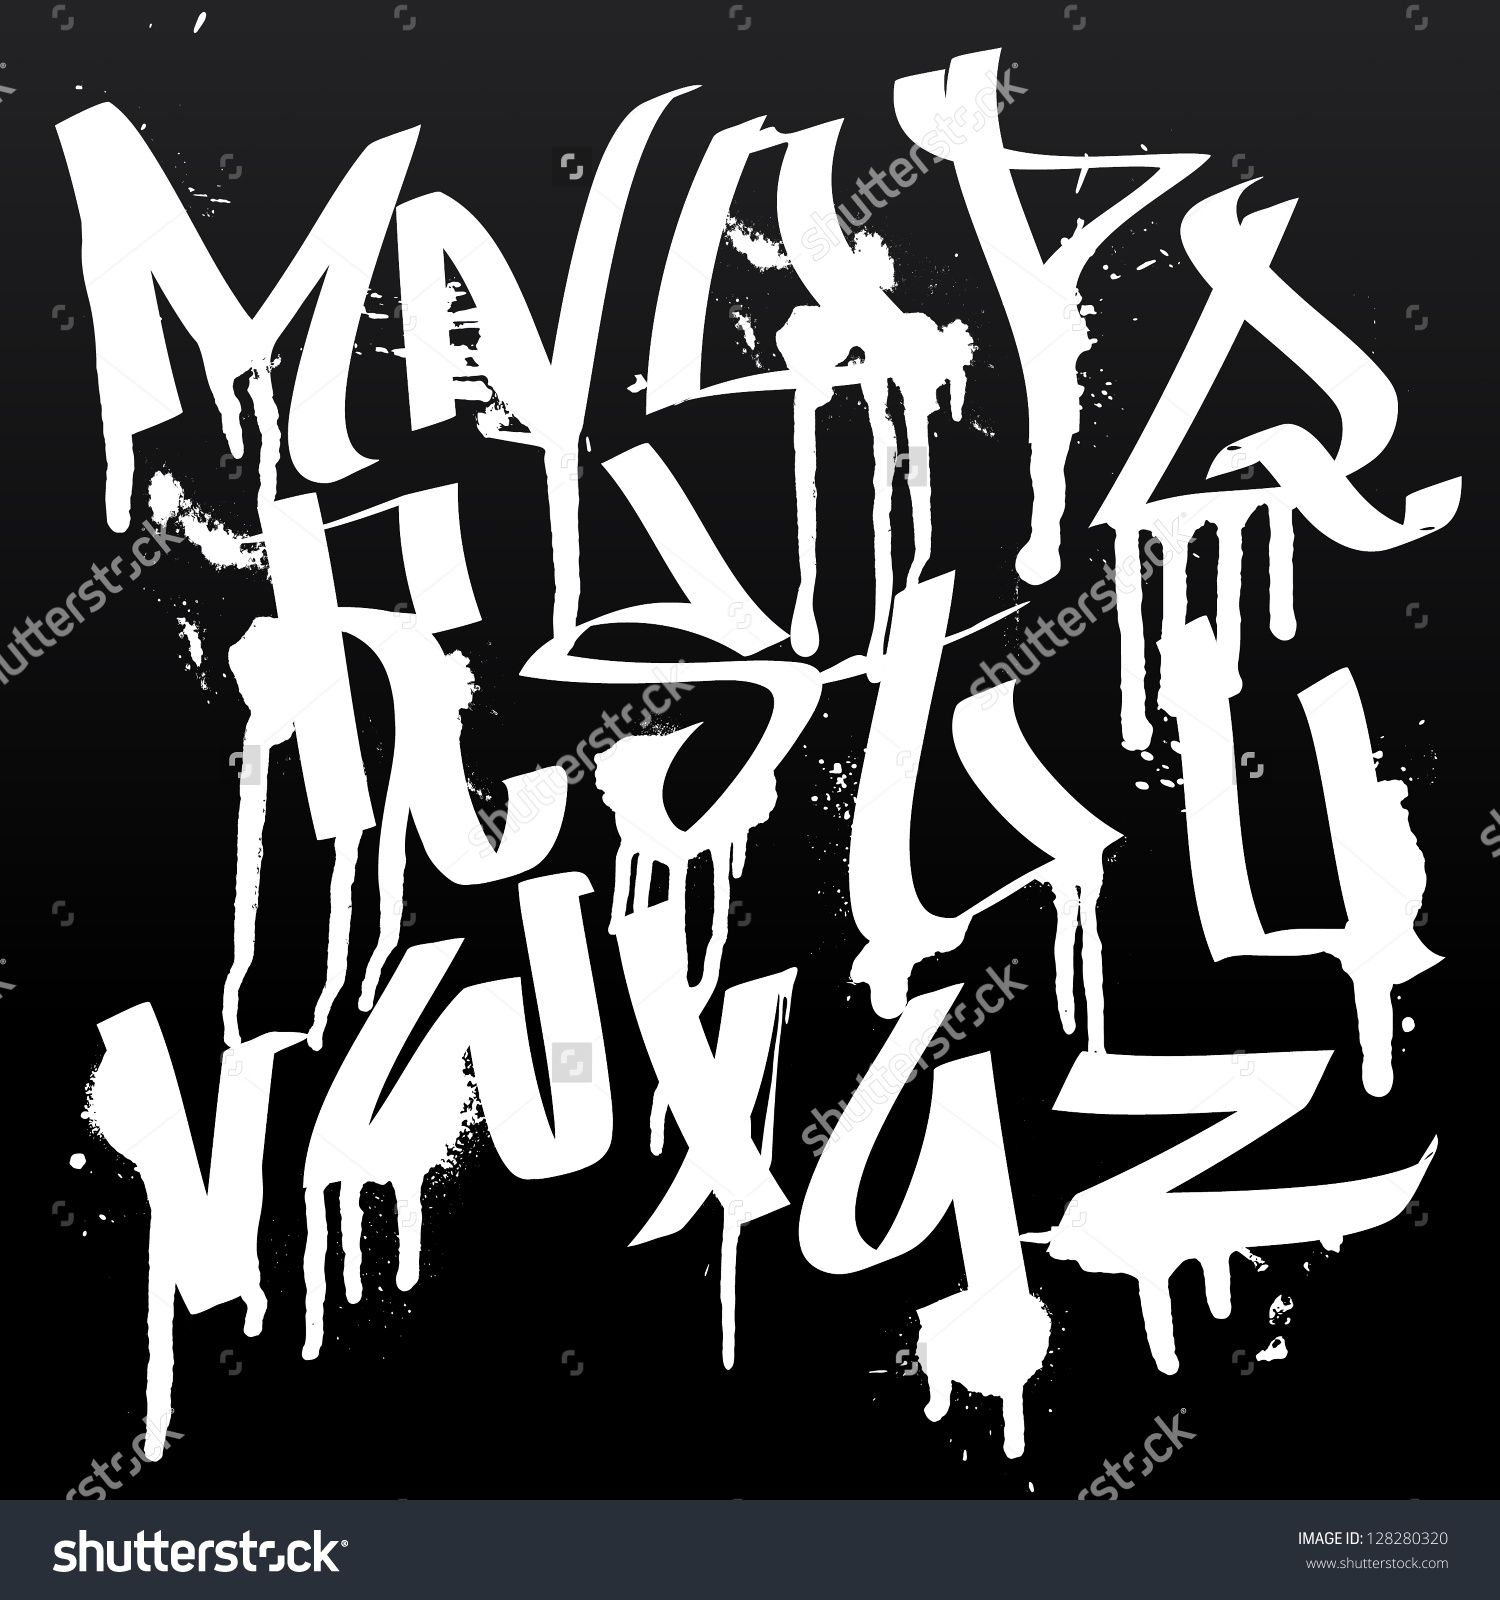 Graffiti Font Alphabet Letters  Hip Hop Type Grafitti Design